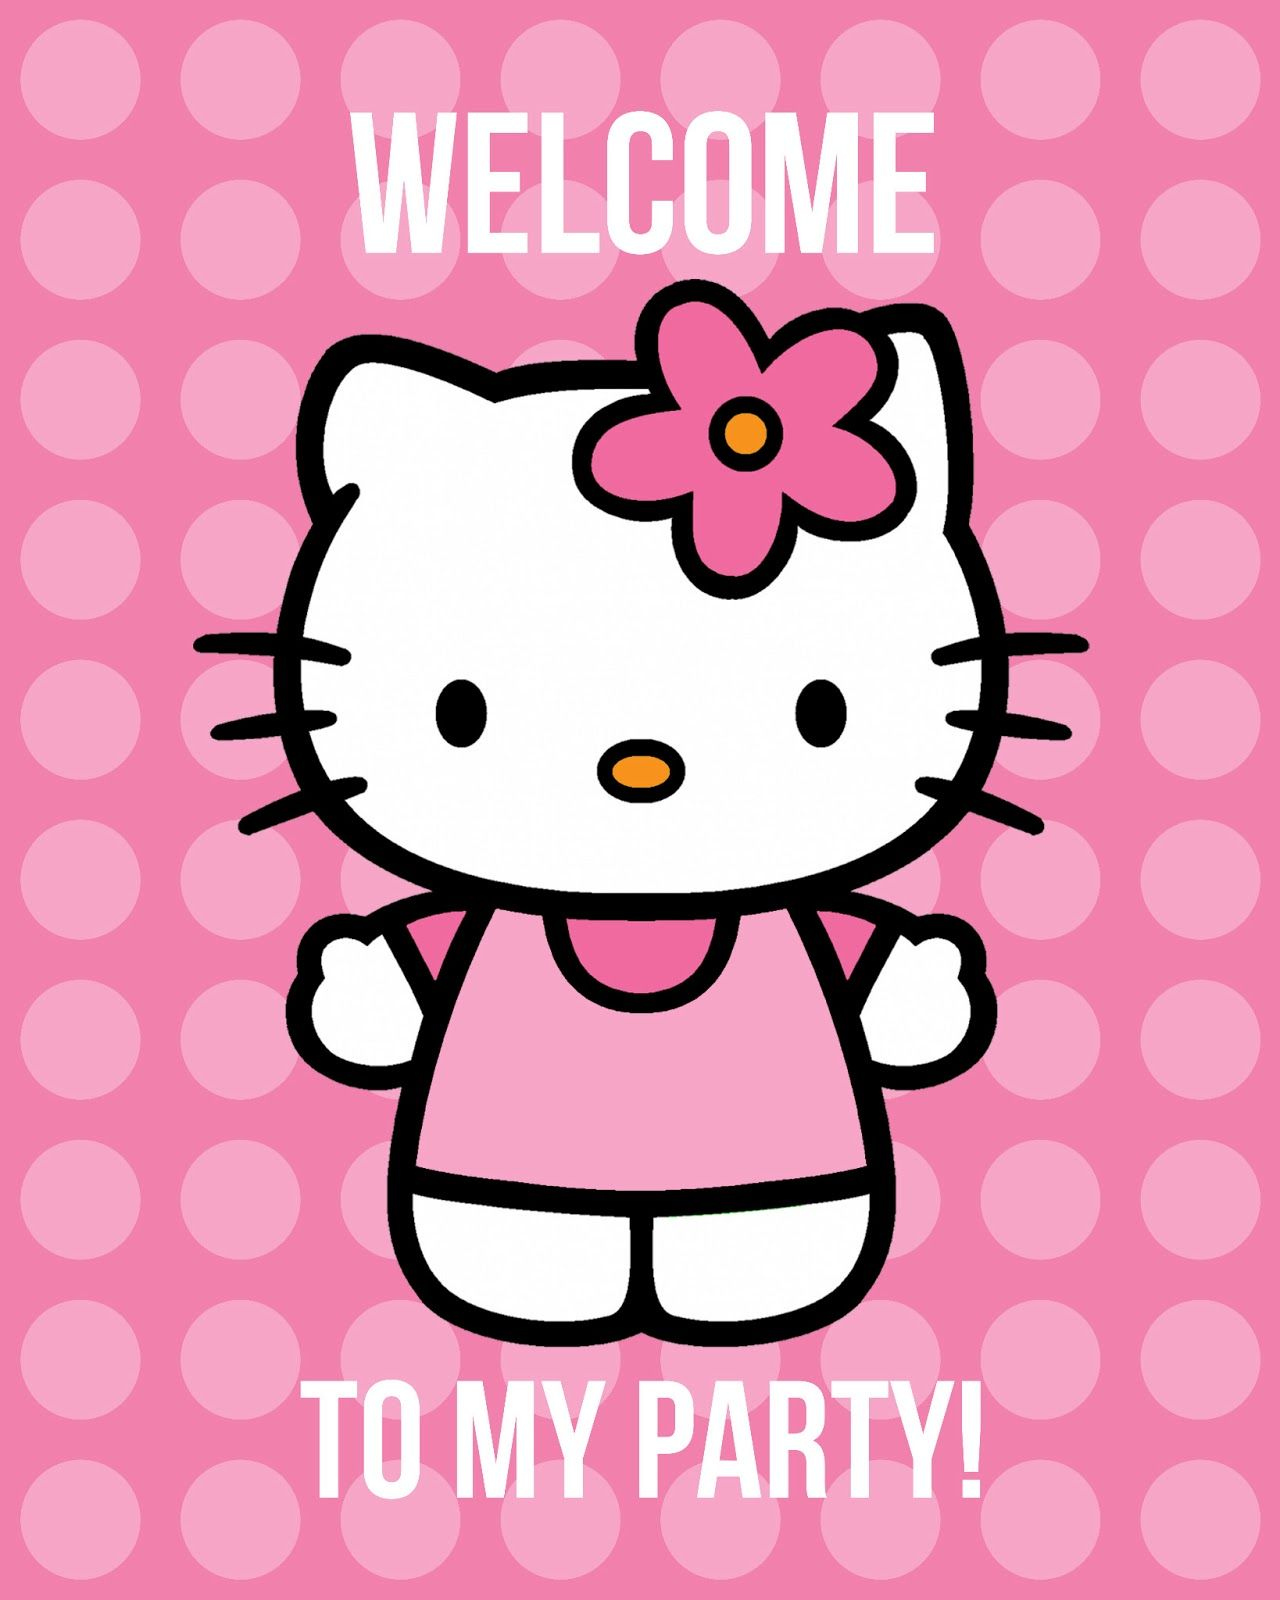 all things simple hello kitty printables invites welcome all things simple hello kitty printables invites welcome poster button